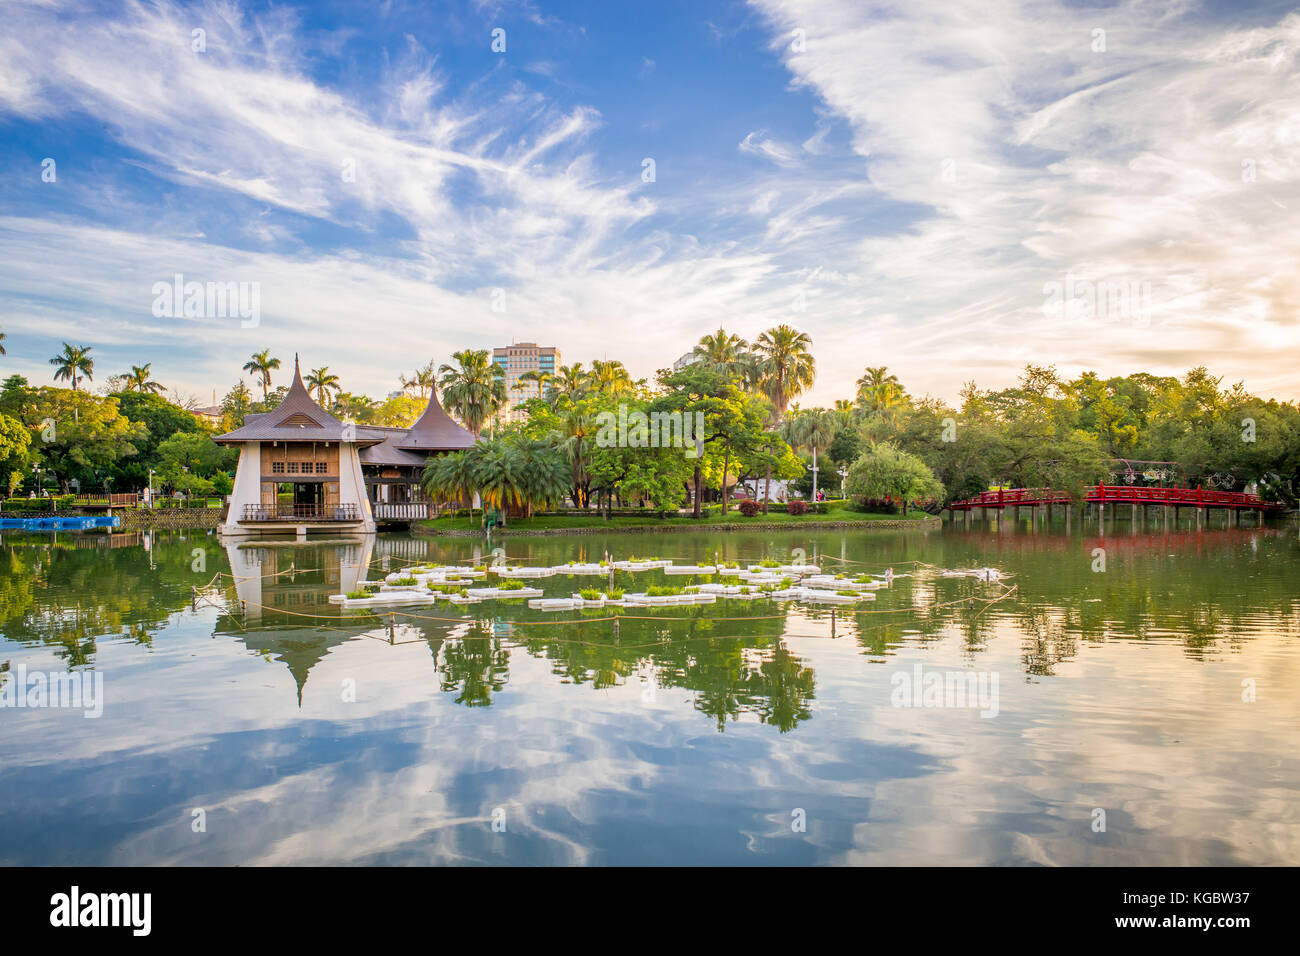 Taichung Park Pavilion in the lake - Stock Image